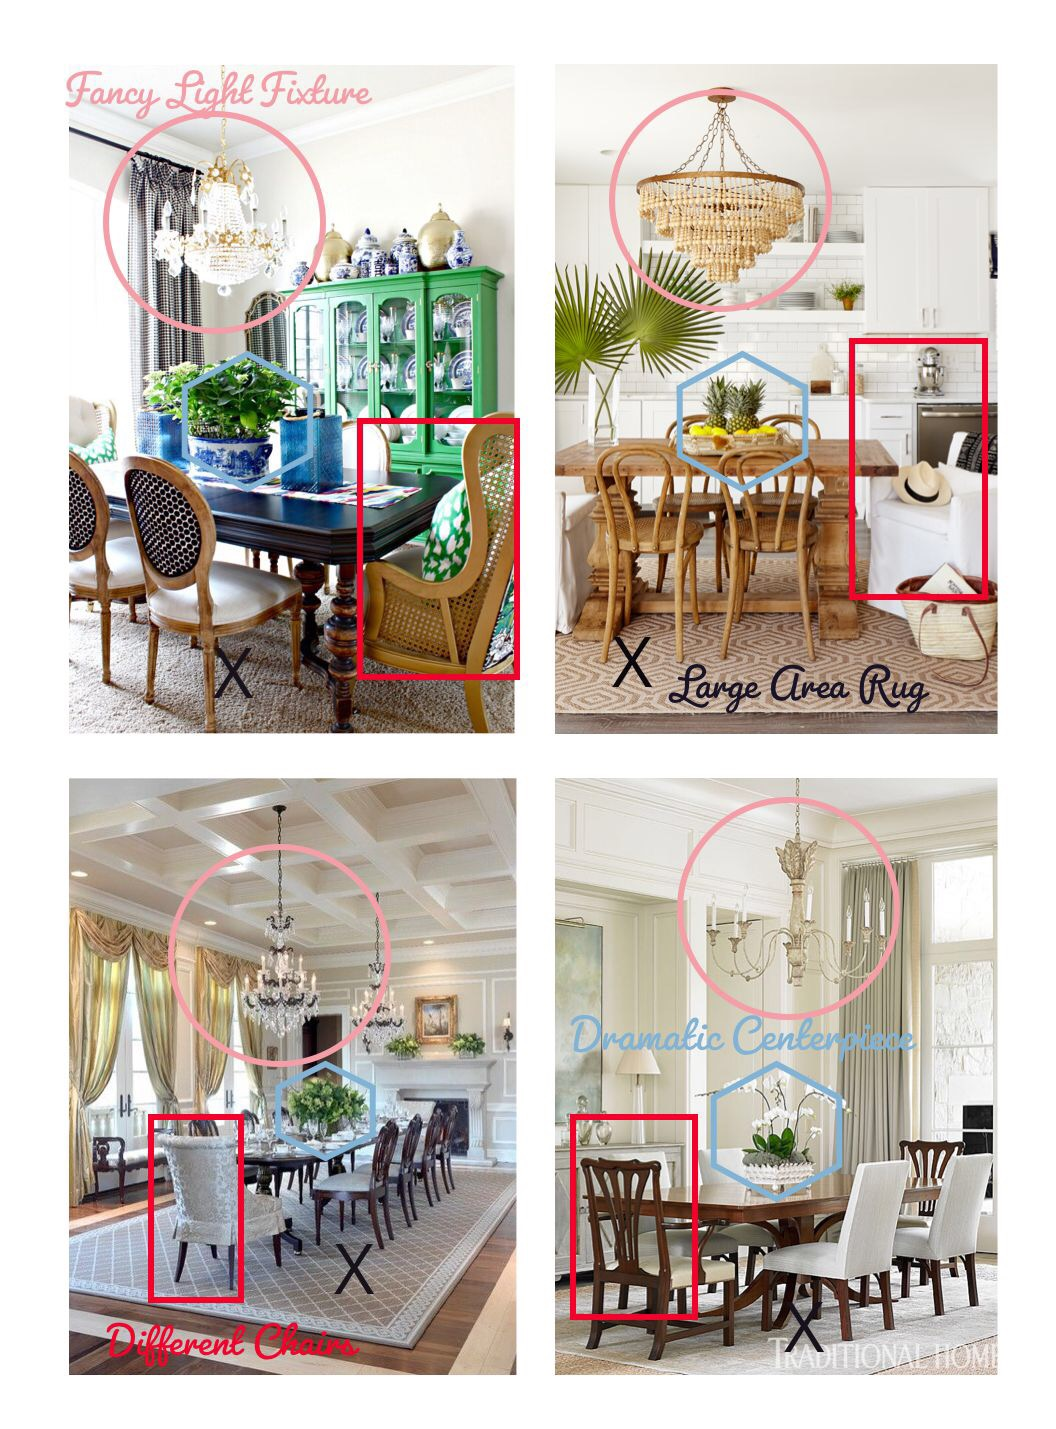 Photos from Dimples and Tangles, Stephanie Kraus Designs, Home Decorating x, and Traditional Home